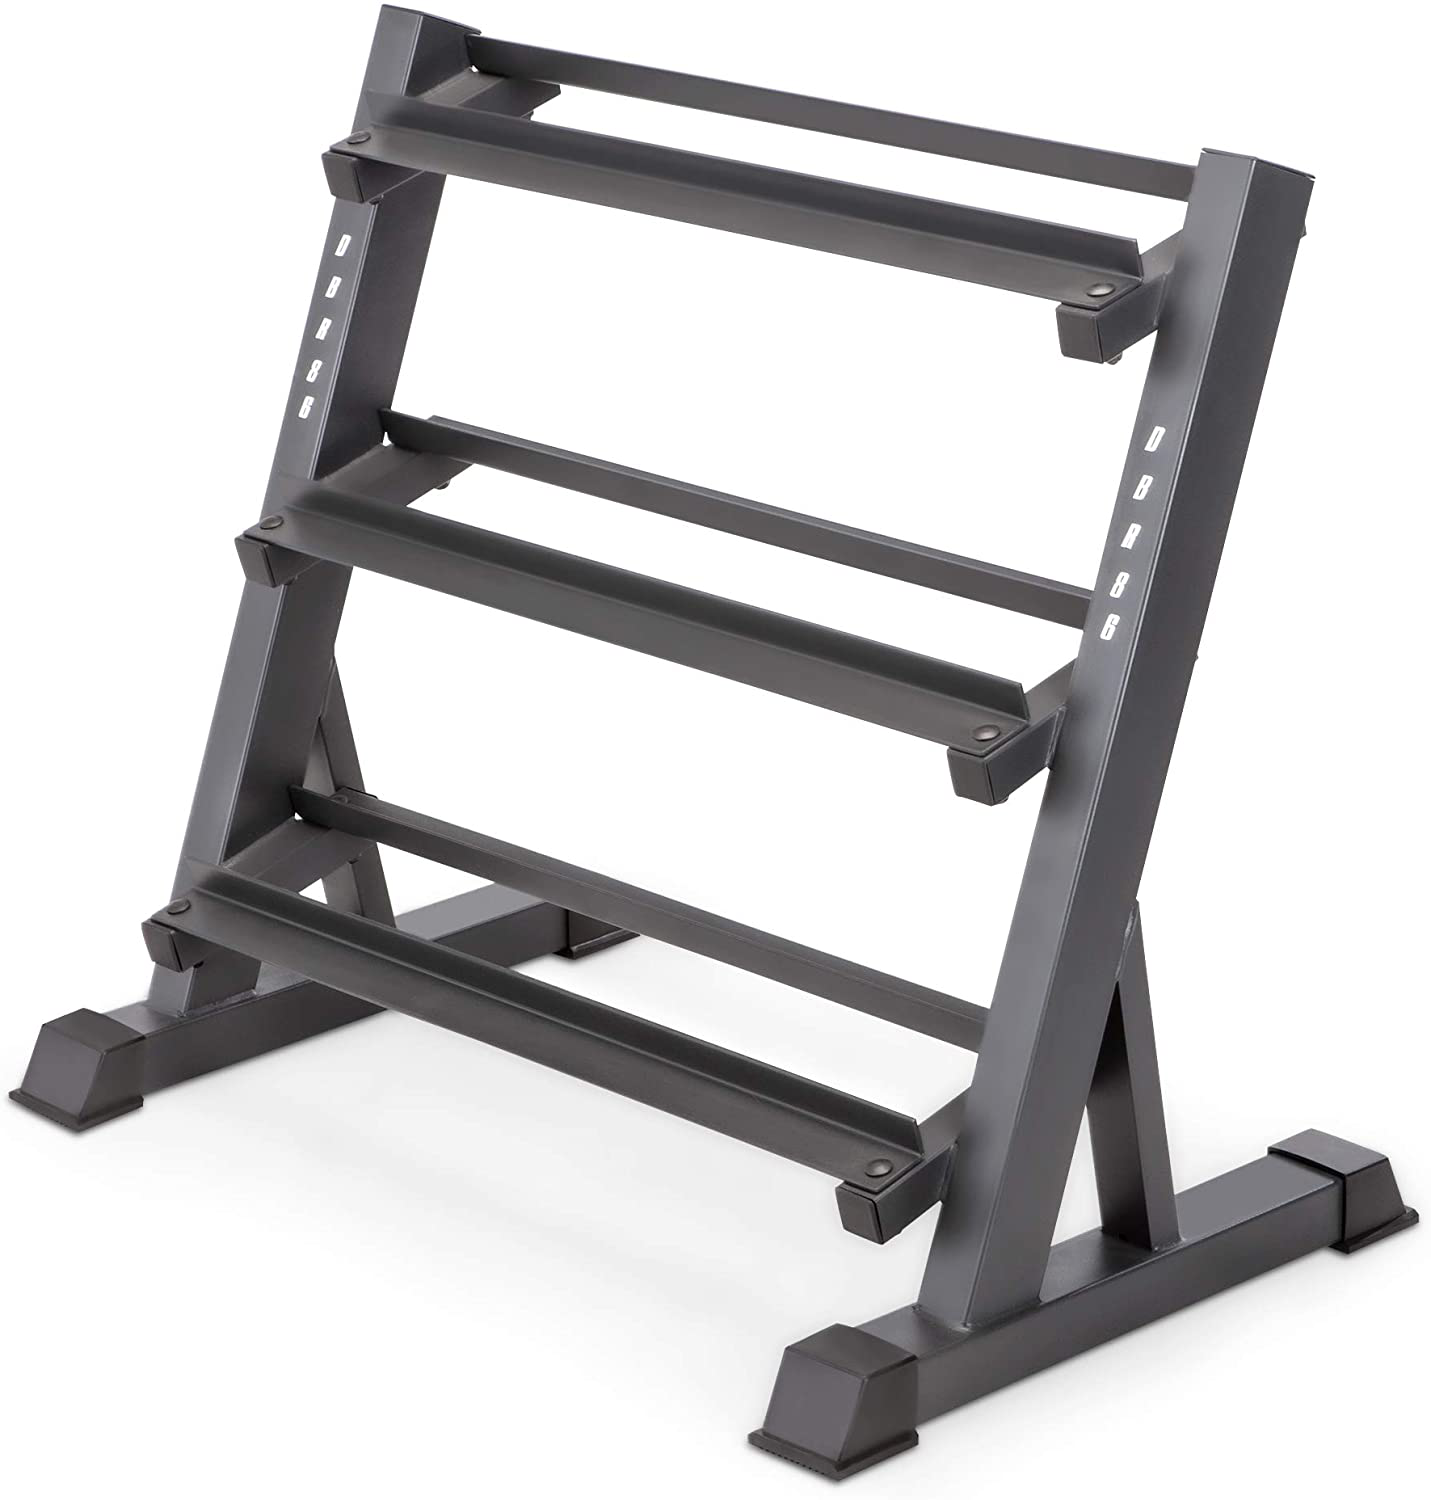 3 Tier Metal Steel Multifunction Dumbbell Rack 1100 Lbs Capacity Kettlebells Weight Plates,Olympic Barbells Storage Rack Home Workout Gym Organizer Storage Stand Exercise Training Equipment Gifts